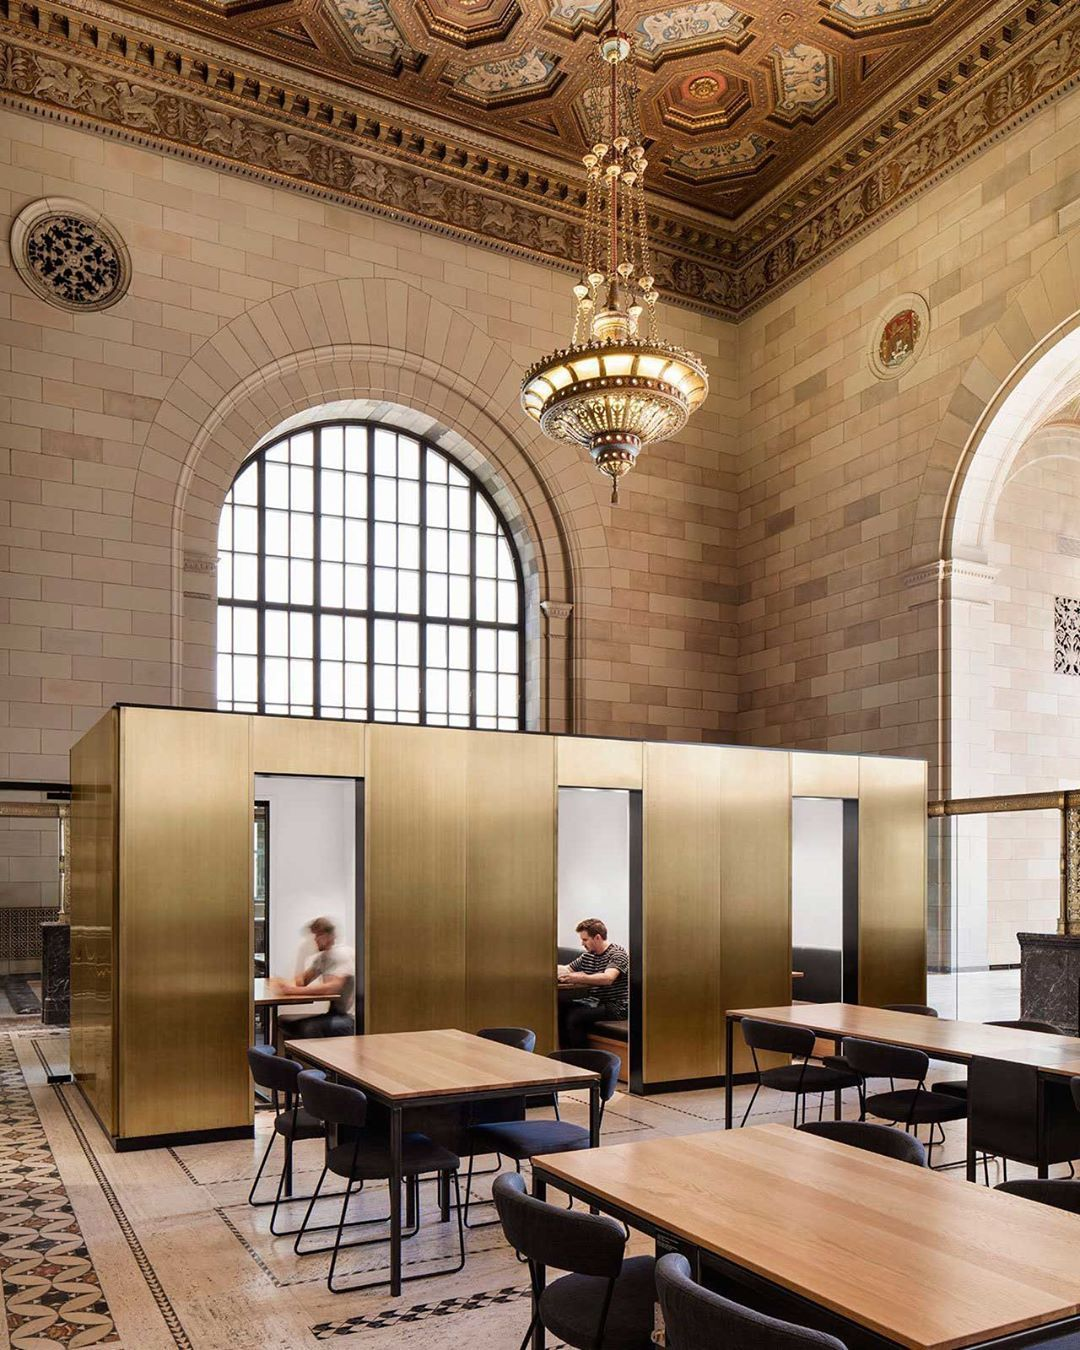 #StoriesOnDesignByYellowtrace >> Metallic Interiors.This spectacular former bank in Montreal has been transformed by Henri Cleinge into an office for a tech start-up and a cafe for freelancers. Photo by Adrien Williams. #Yellowtrace #YellowtraceInteriors #YellowtraceCommercial http://www.yellowtrace.com.au/metallic-interiors/